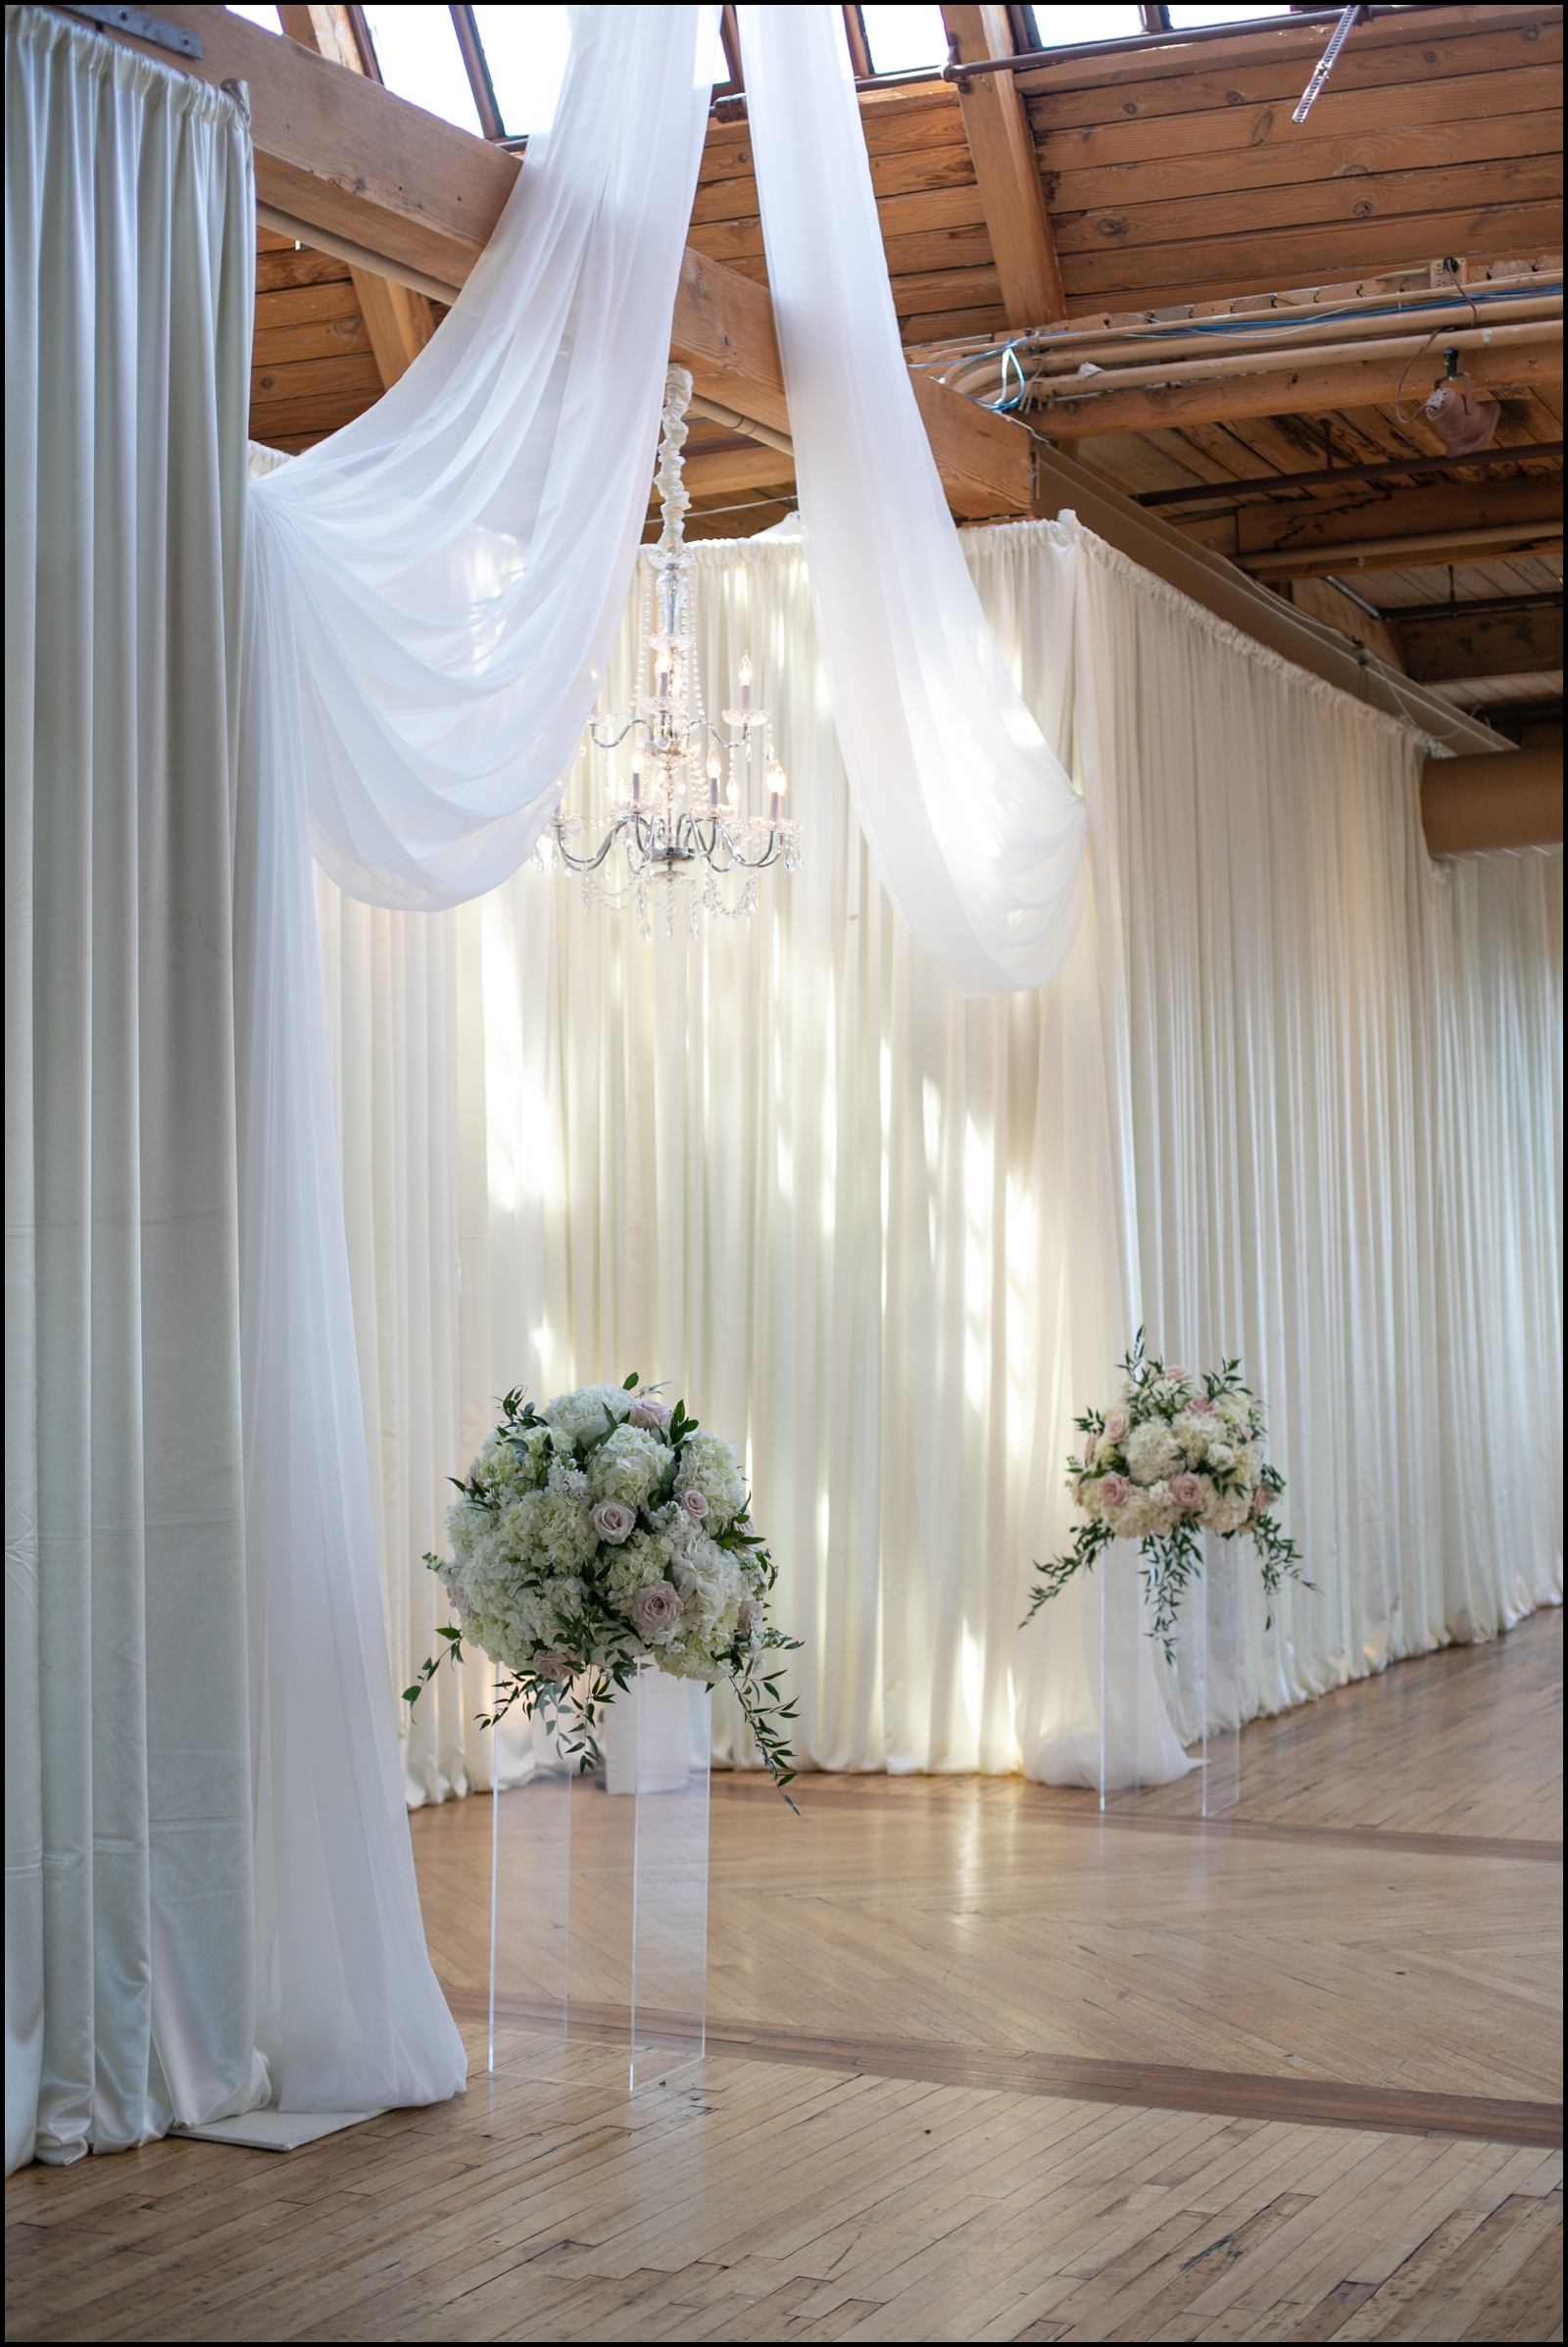 All white wedding arch